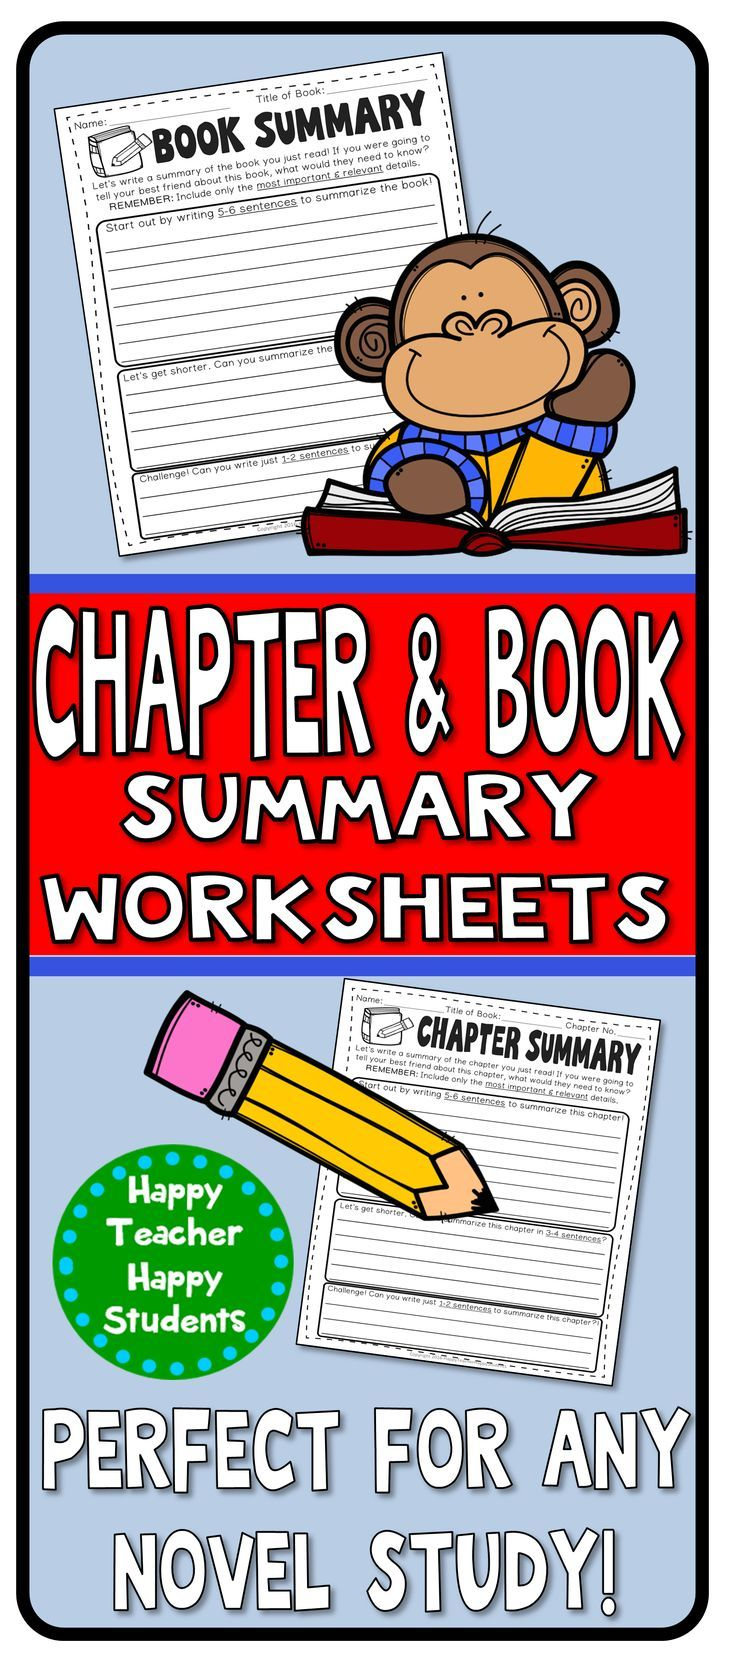 Book Summary AND Chapter Summary Worksheets Templates for